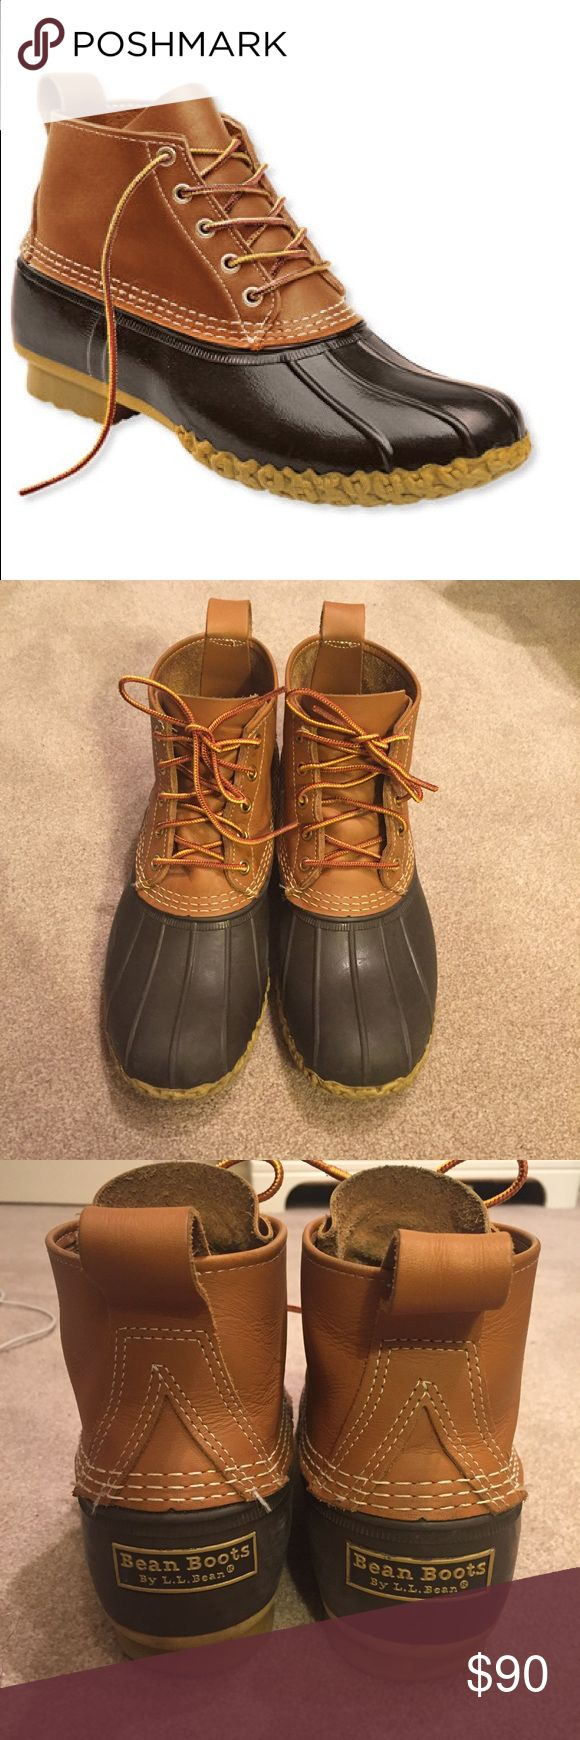 """Men's 6"""" L.L. Bean boots Great condition classic ll bean boots. Tan/brown color. Worn a few times. Size marking on inside has worn off, but they are a men's 9. I can provide measurements or more pics upon request L.L. Bean Shoes Rain & Snow Boots"""